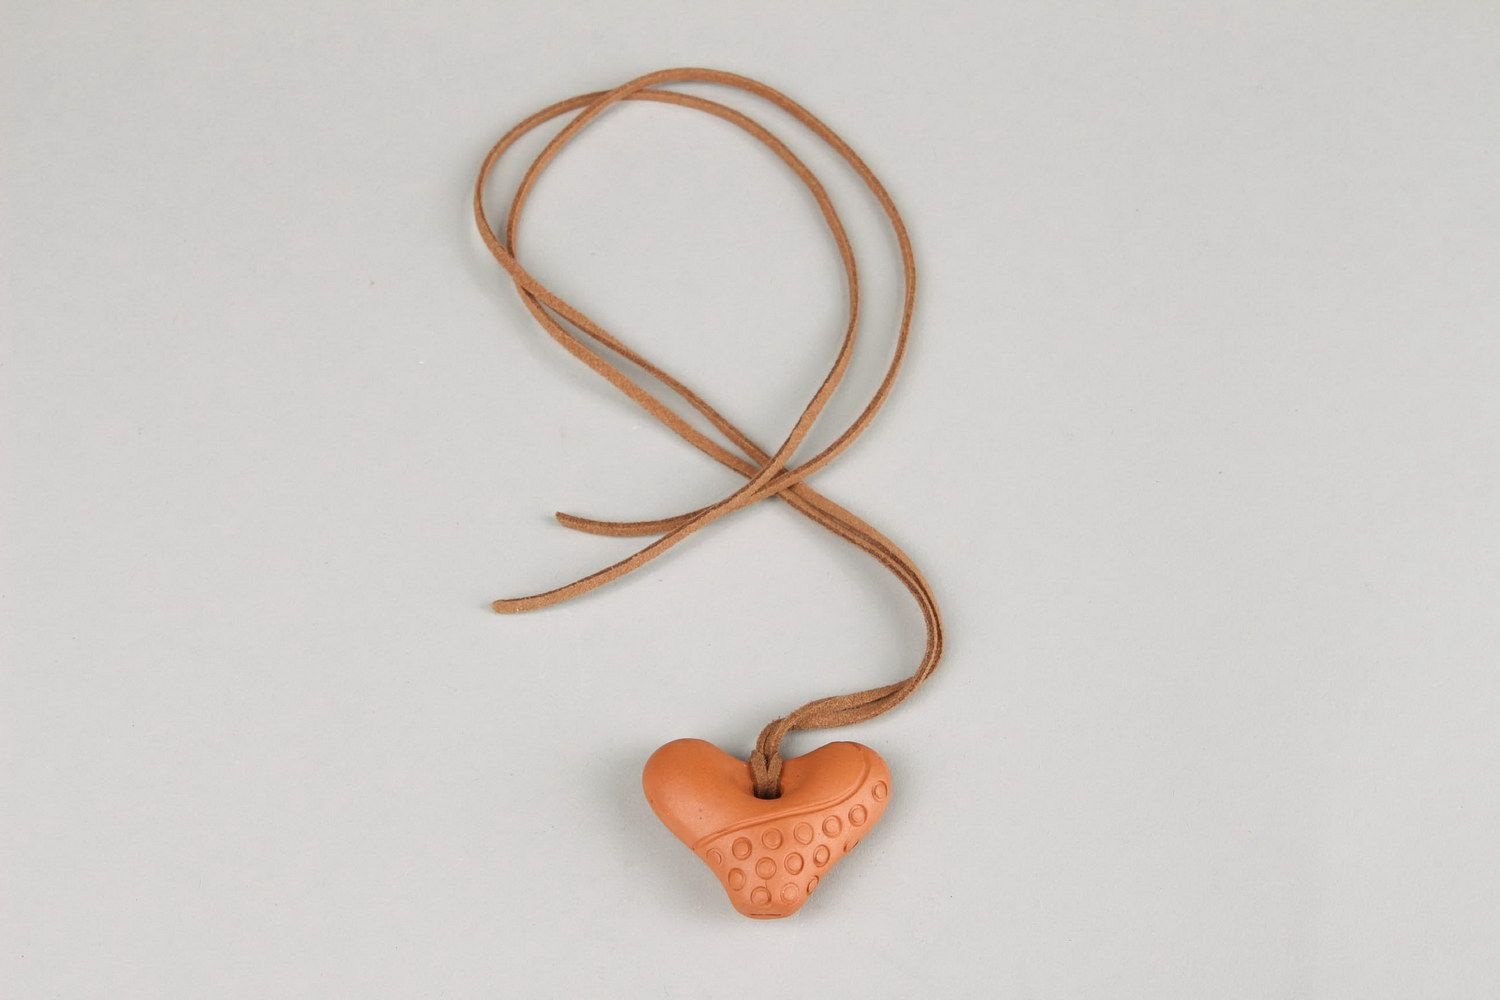 Heart-shaped tin whistle pendant made of clay  photo 5